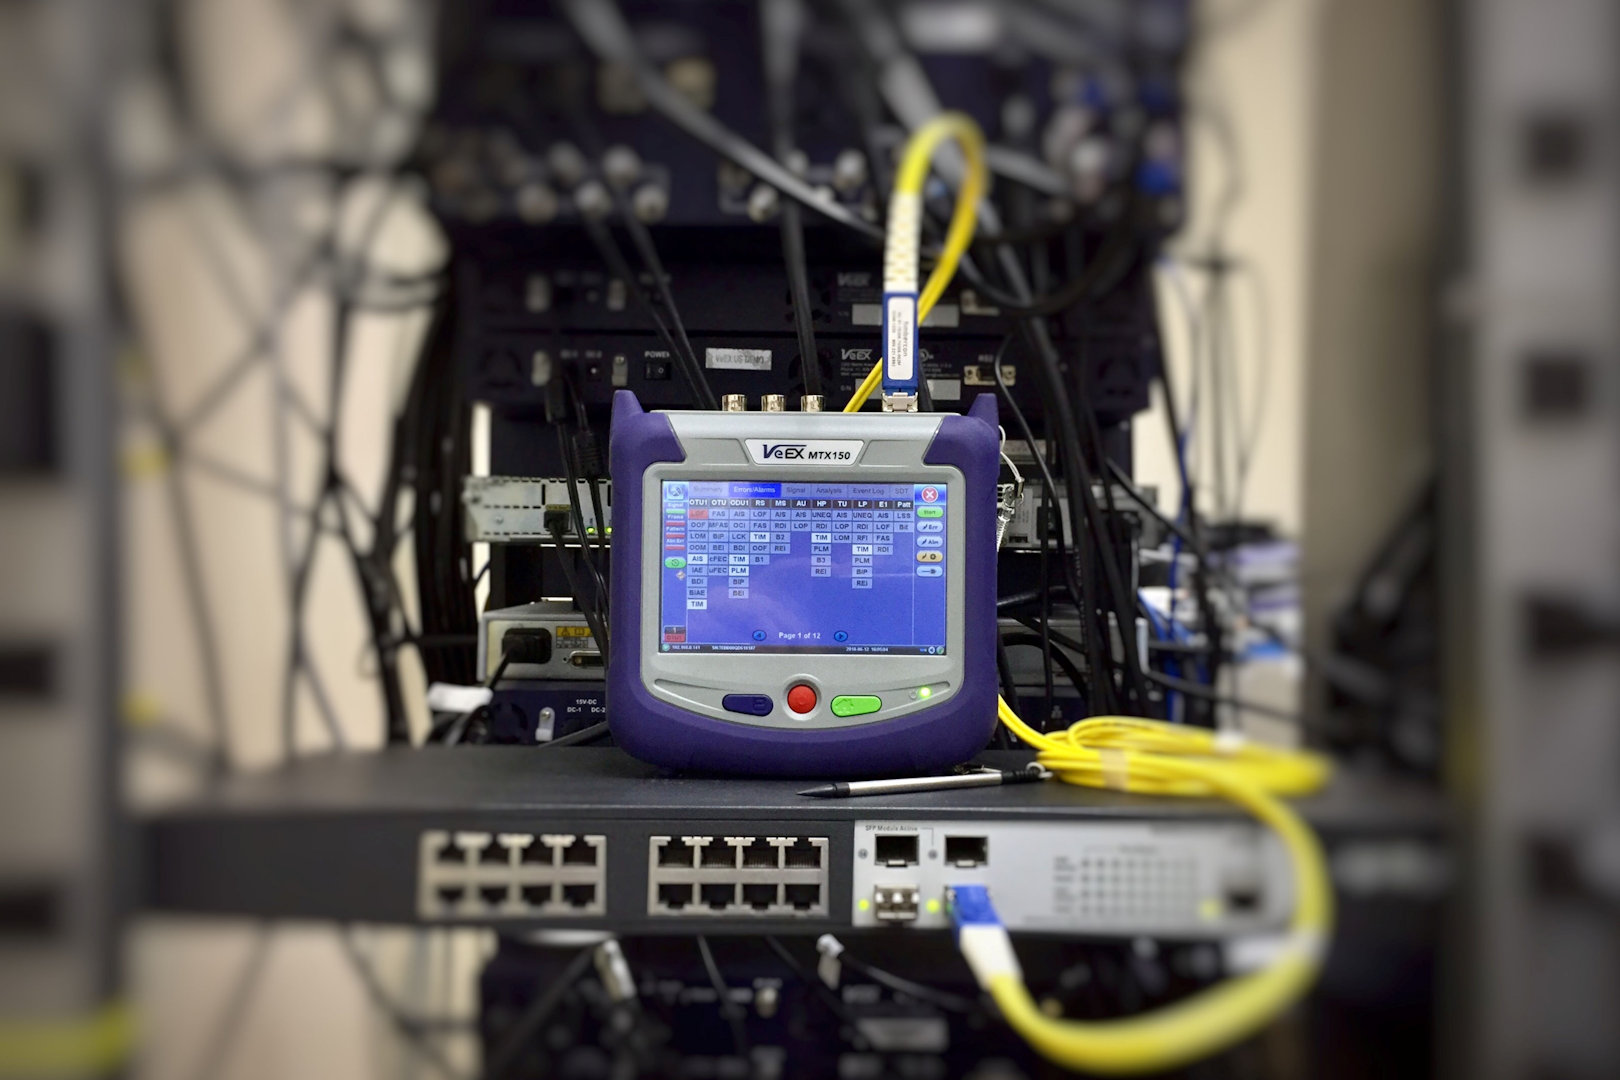 data analysis and testing within communications room network switch